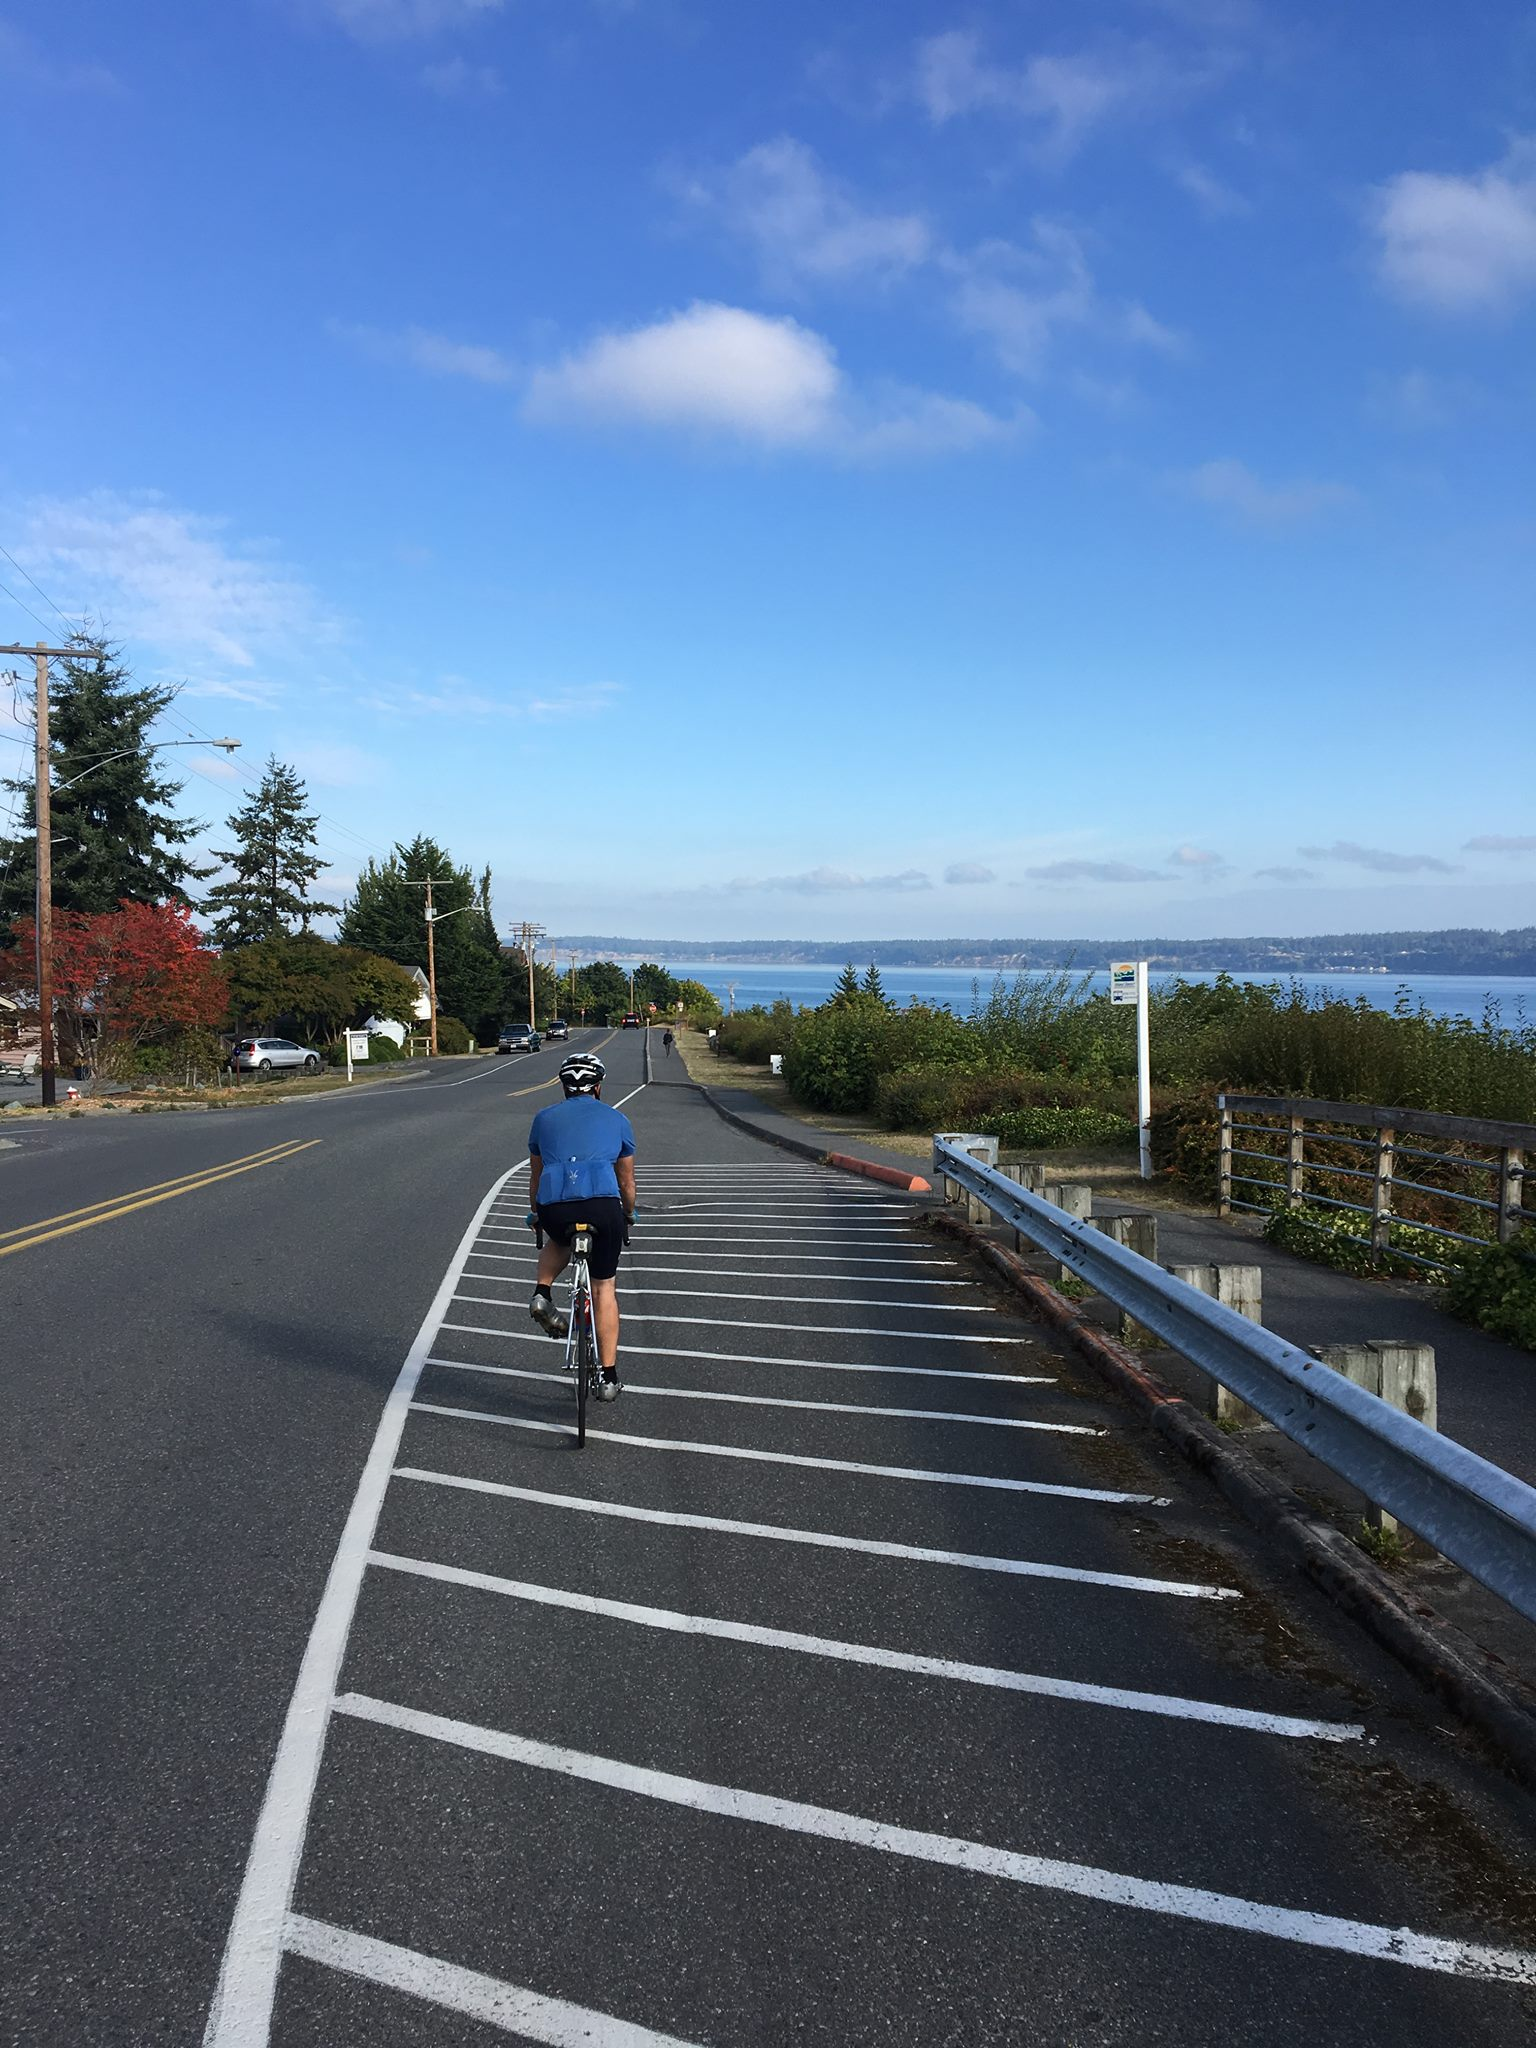 Struggling to keep up with my friend Jared on Whidbey Island.